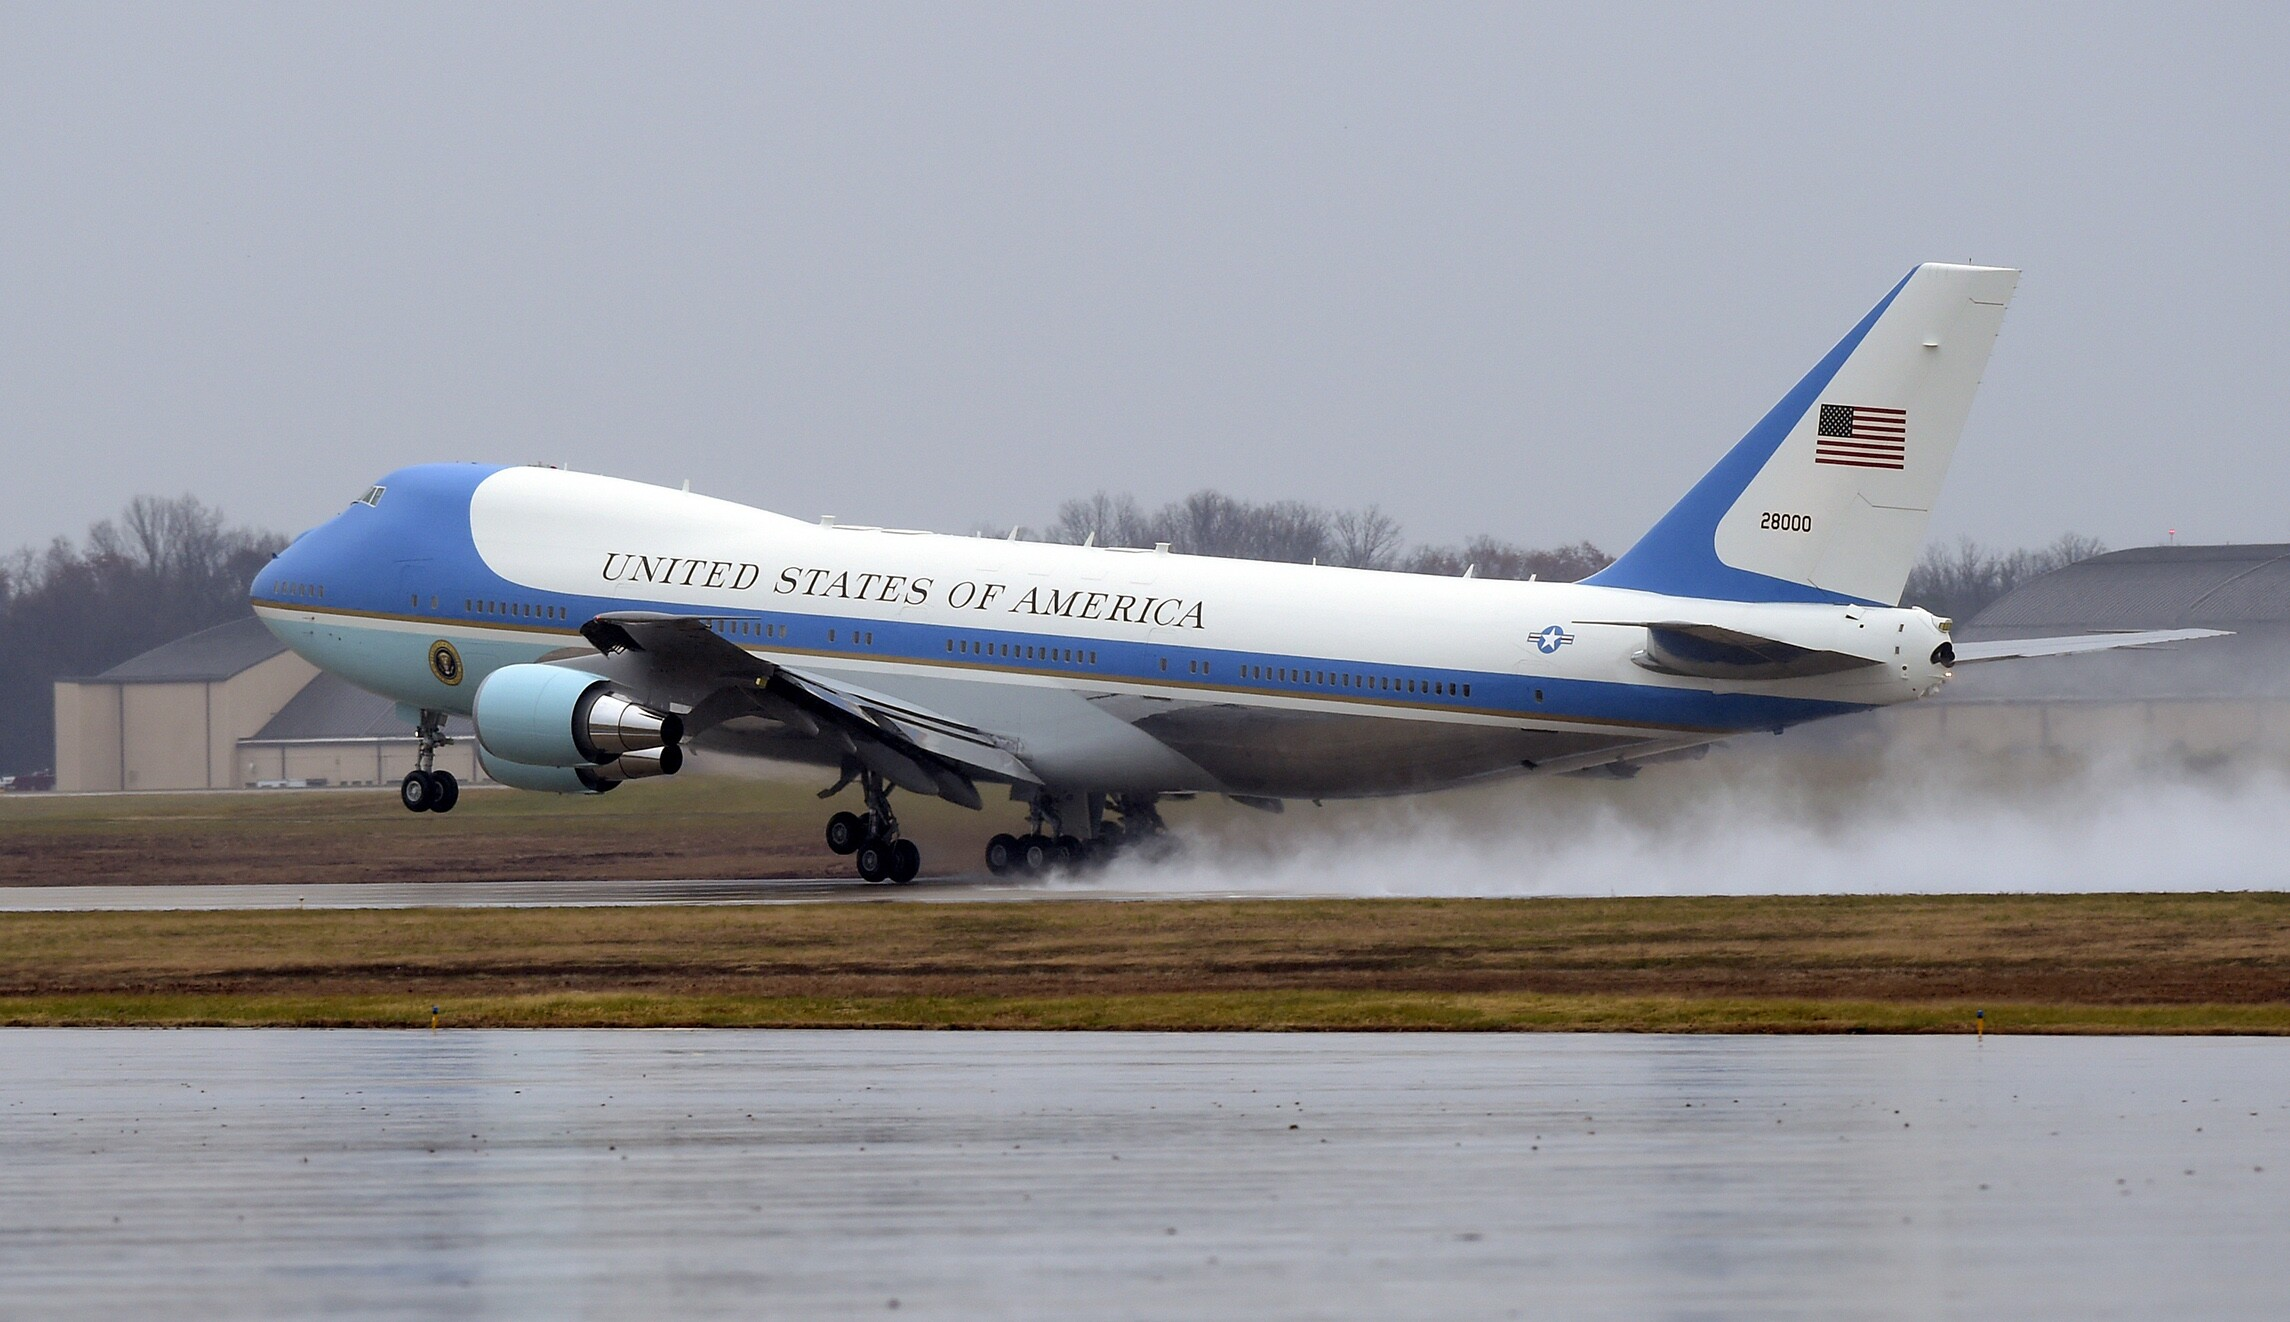 plus récent bc432 aecce Custom upgrades add $600 million to Air Force One sticker price